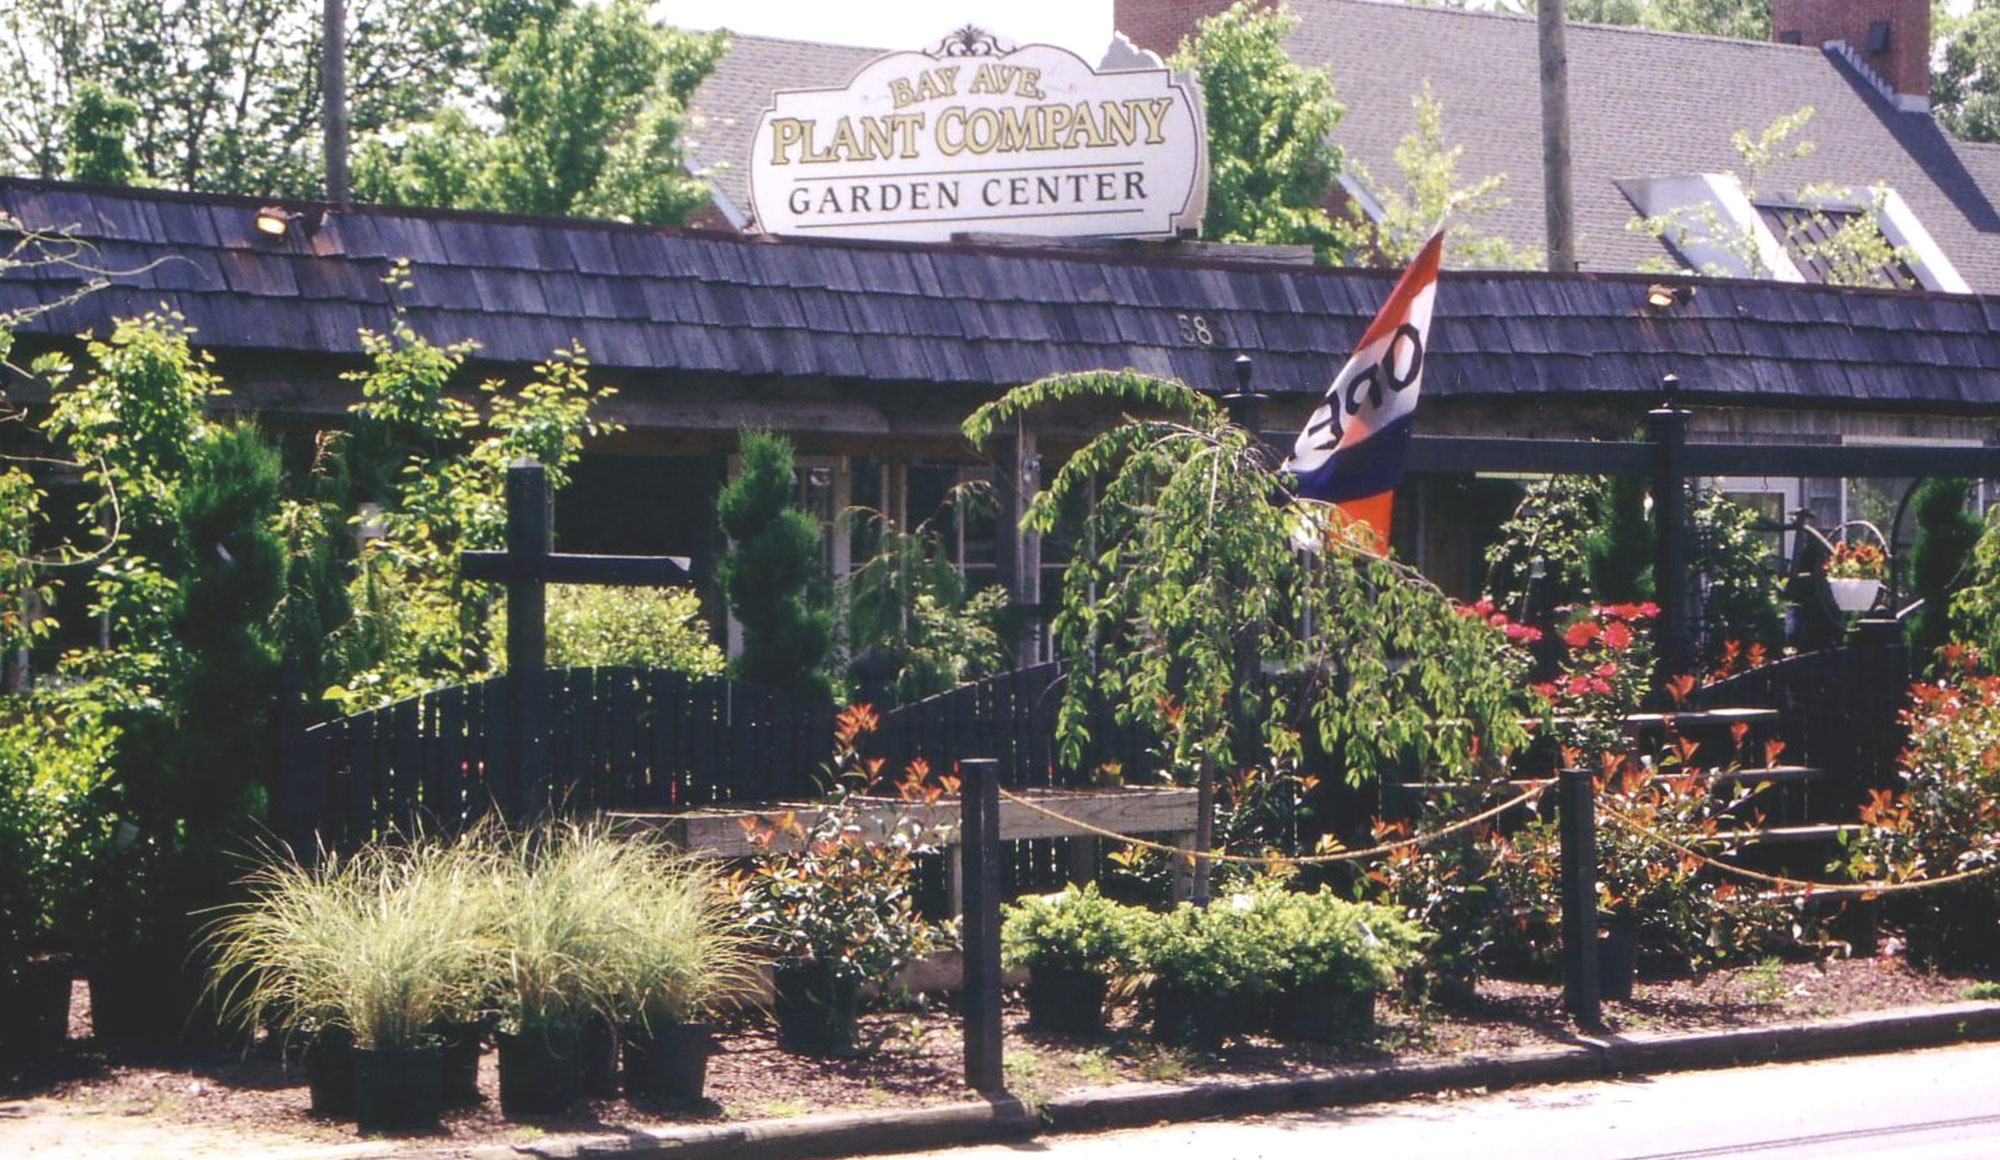 Bay Avenue Garden Center